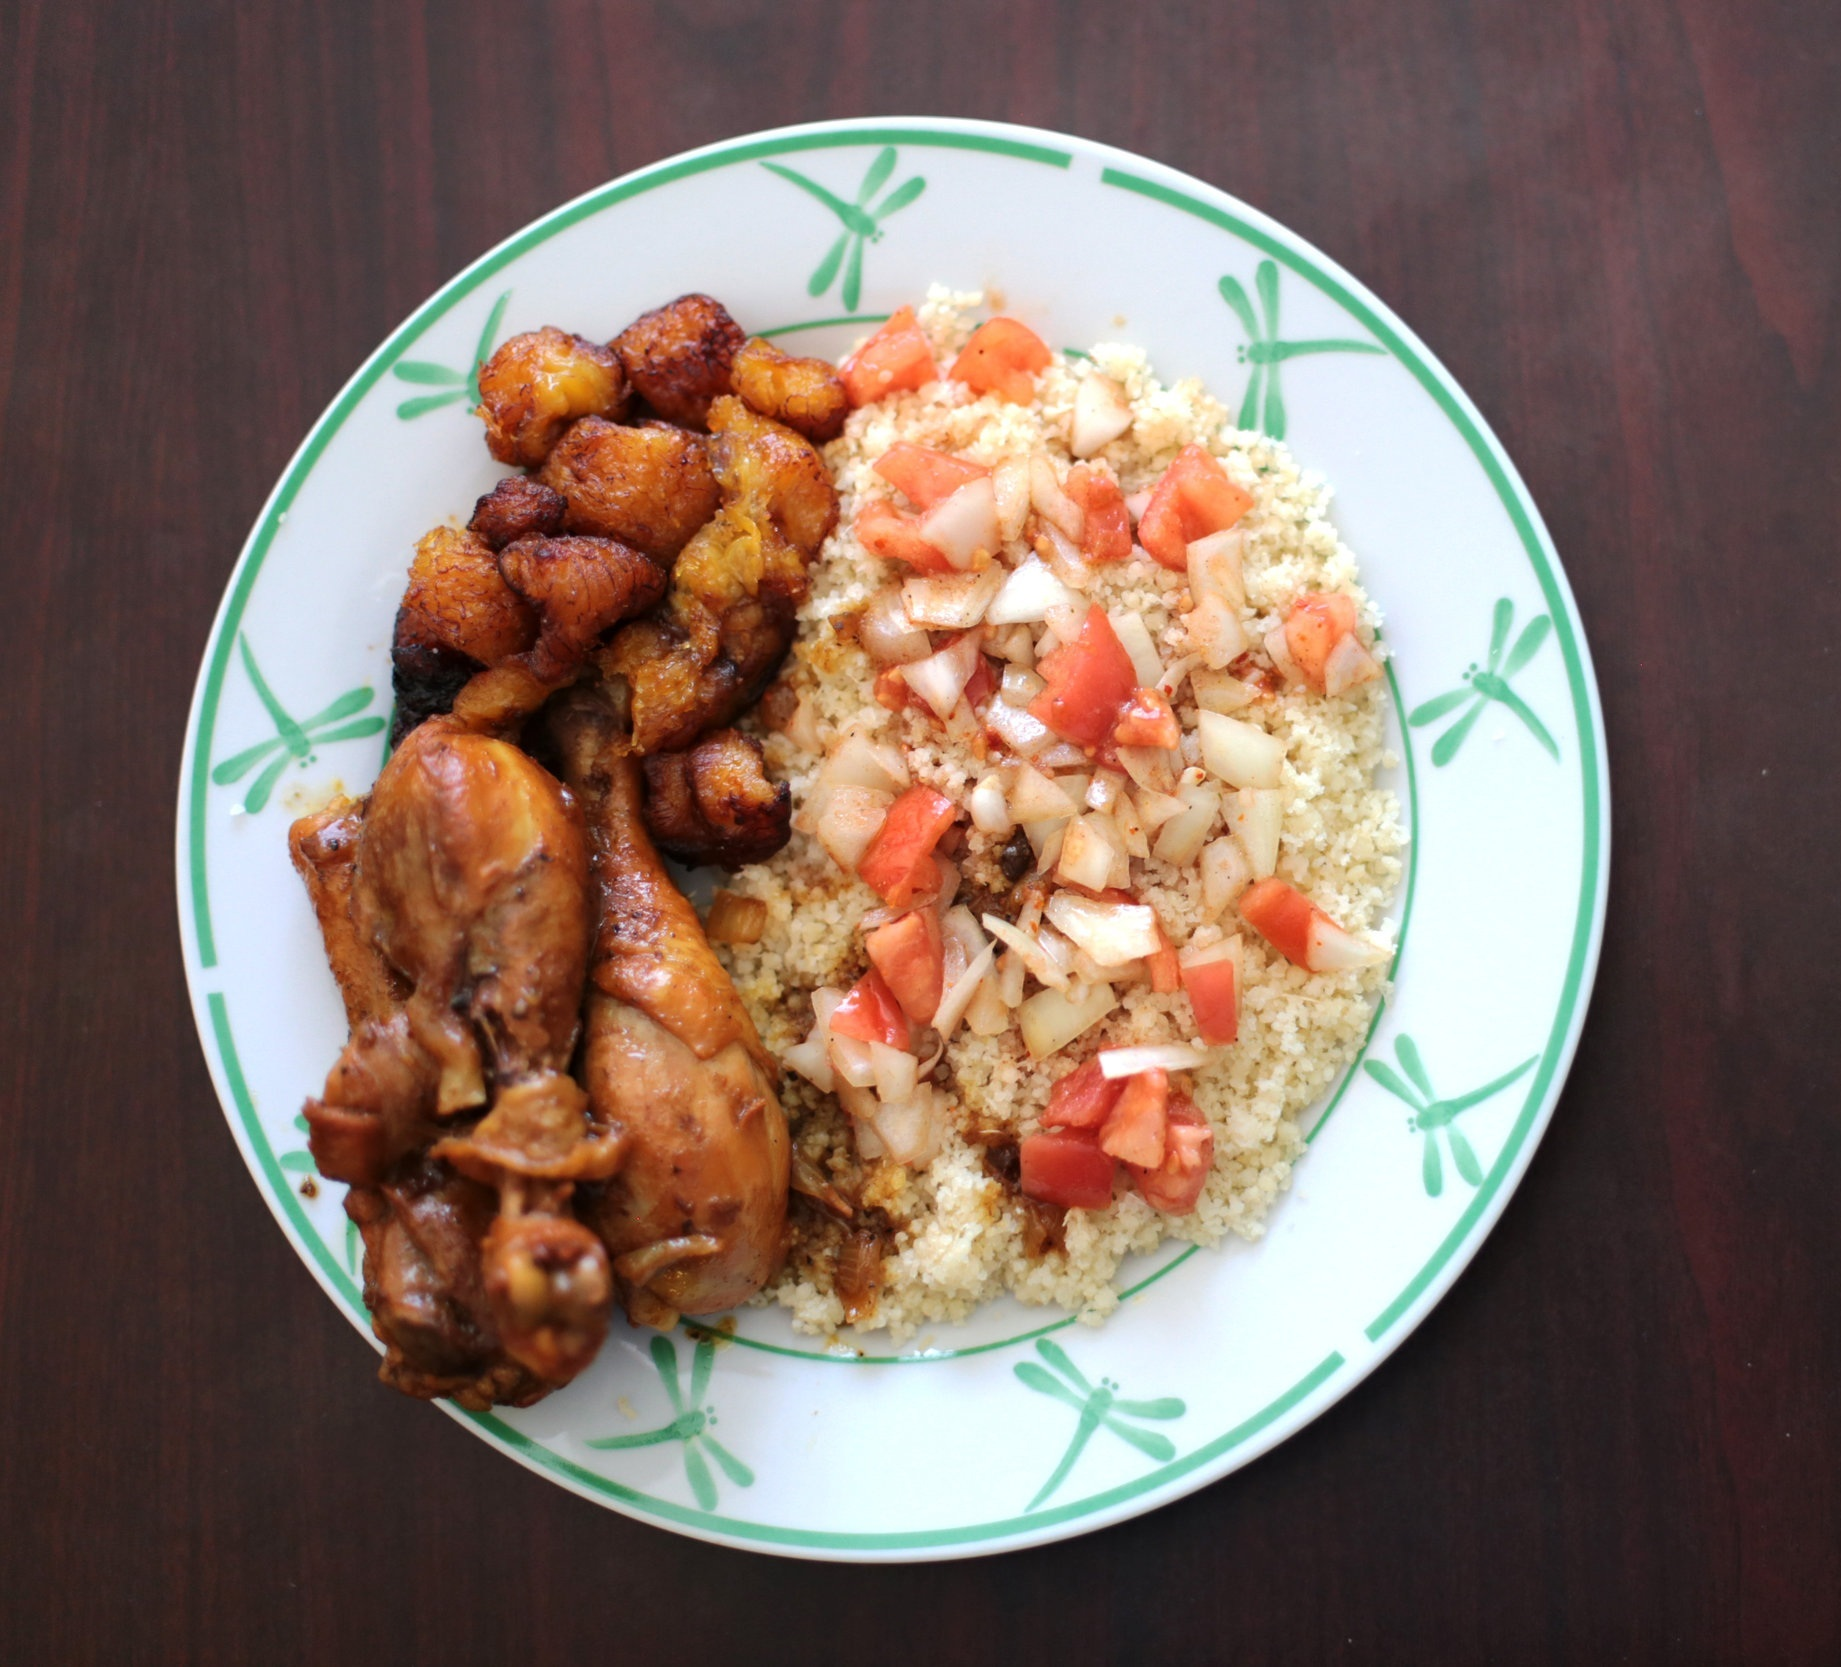 This recipe is provided by Aminata Sanogo. Elements for this dish are based on ingredients and dishes from Côte d'Ivoire, the home of Sanogo's family.